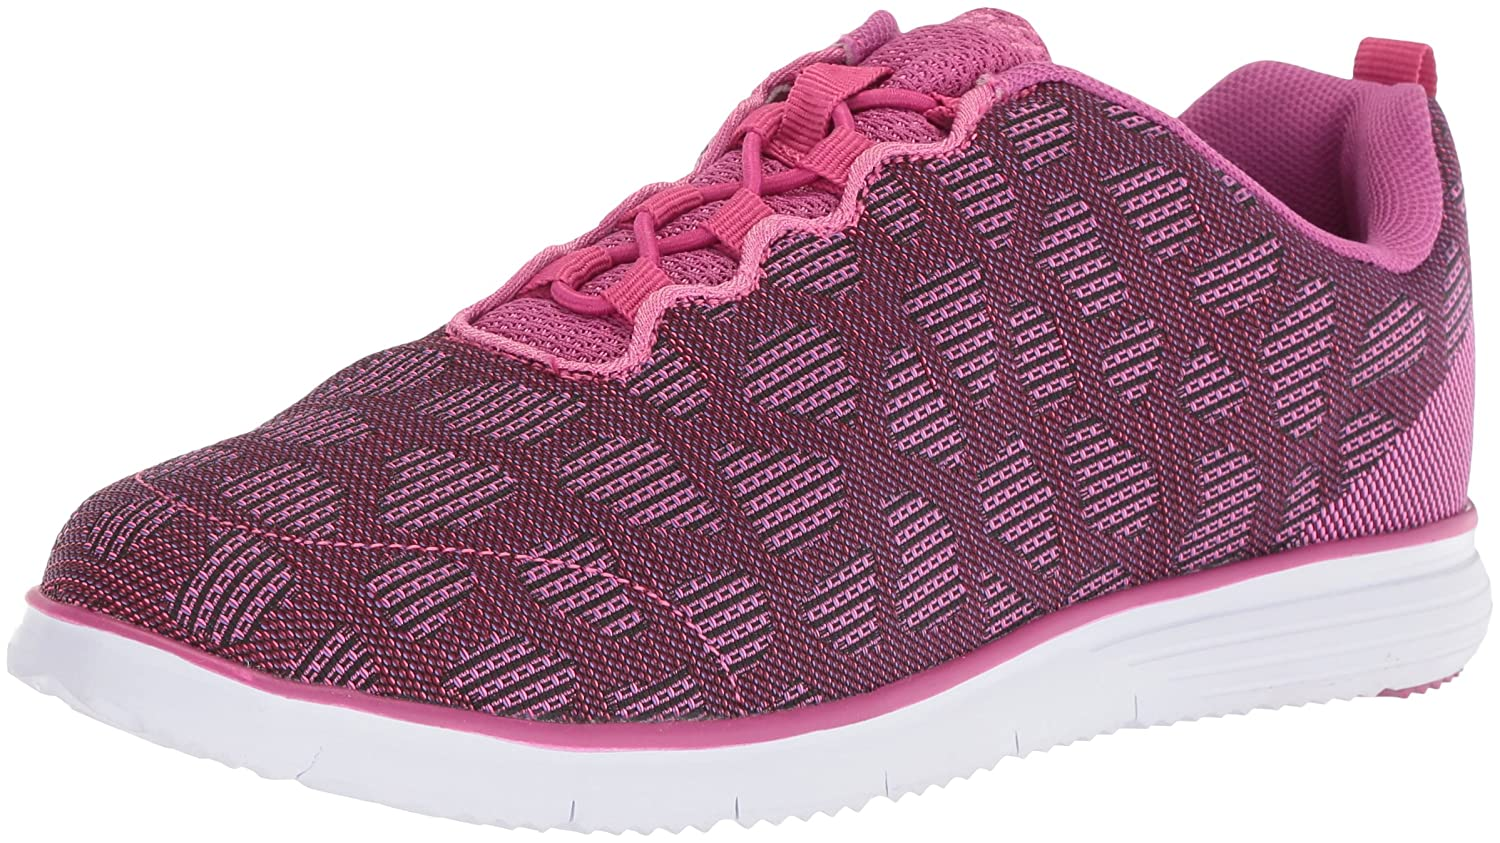 Propét Women's TravelFit Walking Shoe B073DNX7MY 7 2E US|Berry